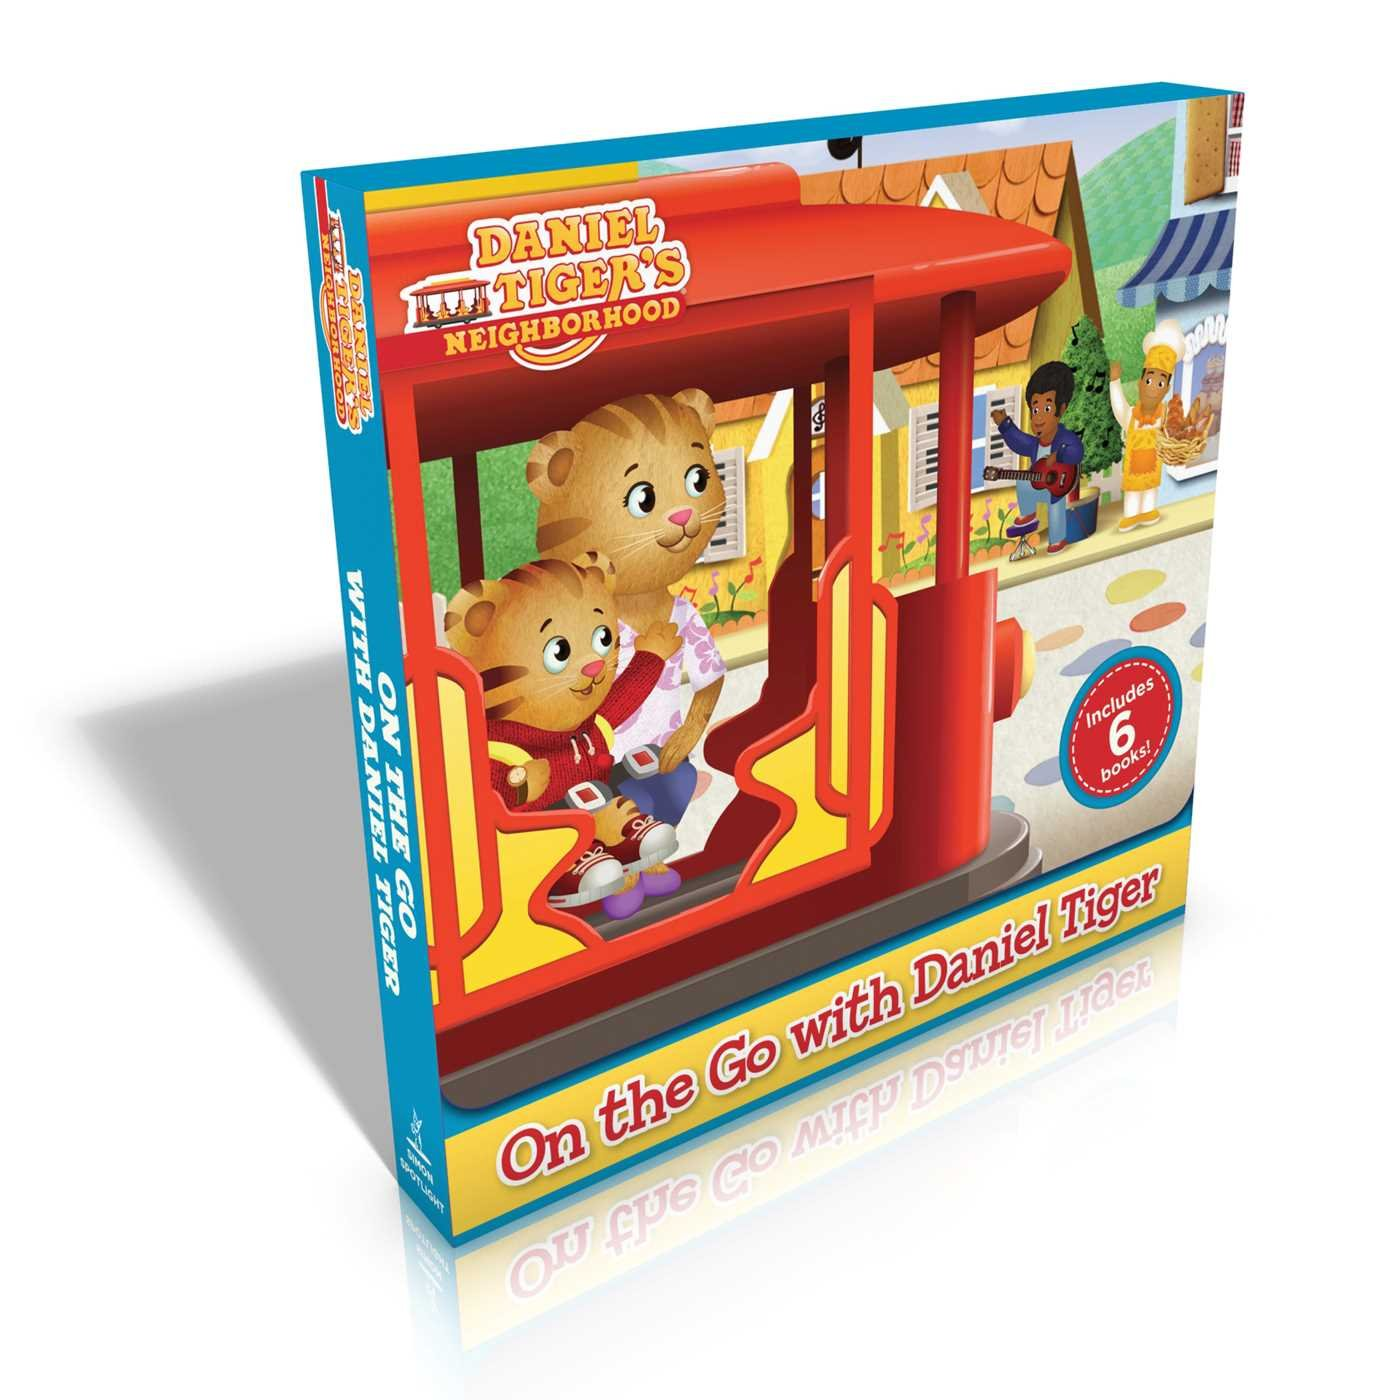 On The Go With Daniel Tiger You Are Special Daniel Tiger